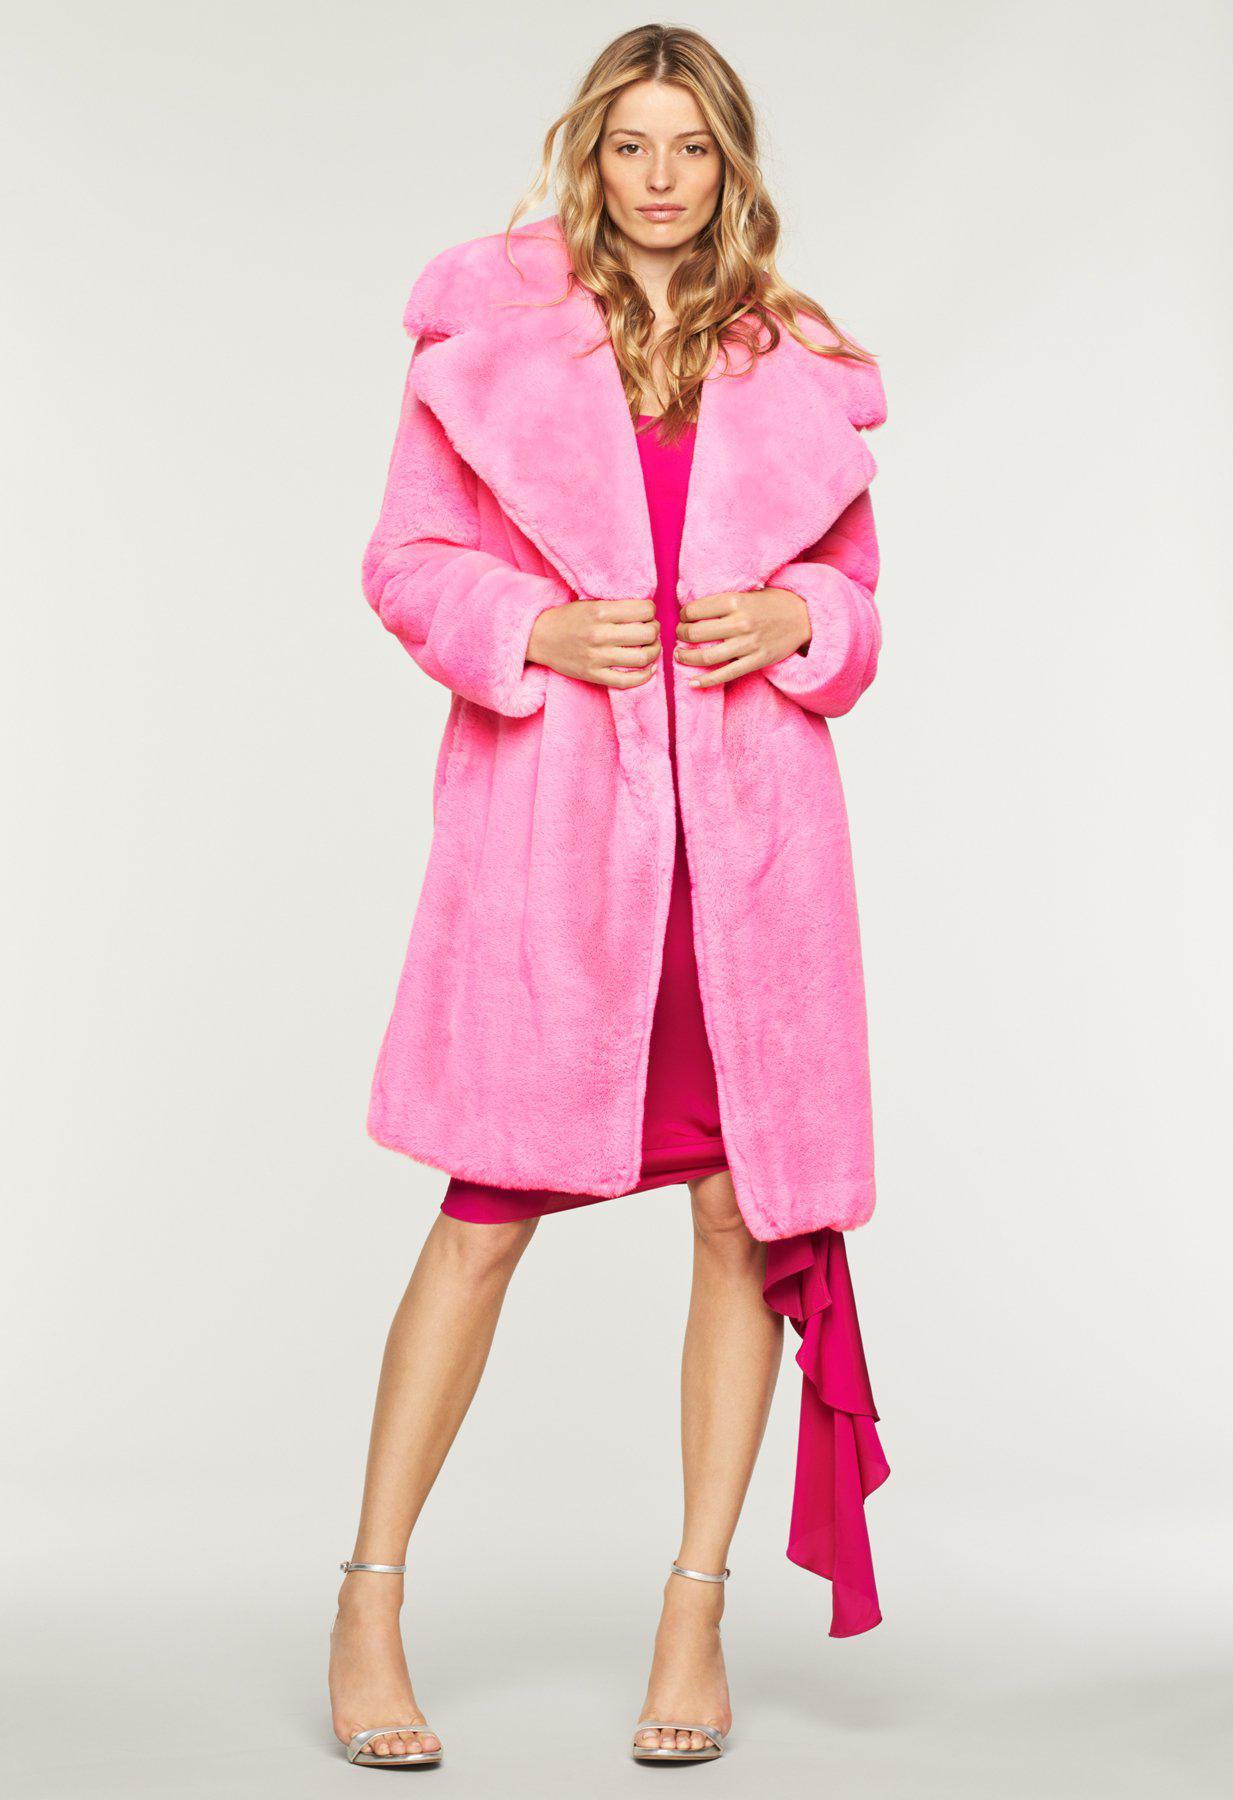 e2d4a1d41309 MILLY Faux Fur Riley Coat in Pink - Lyst